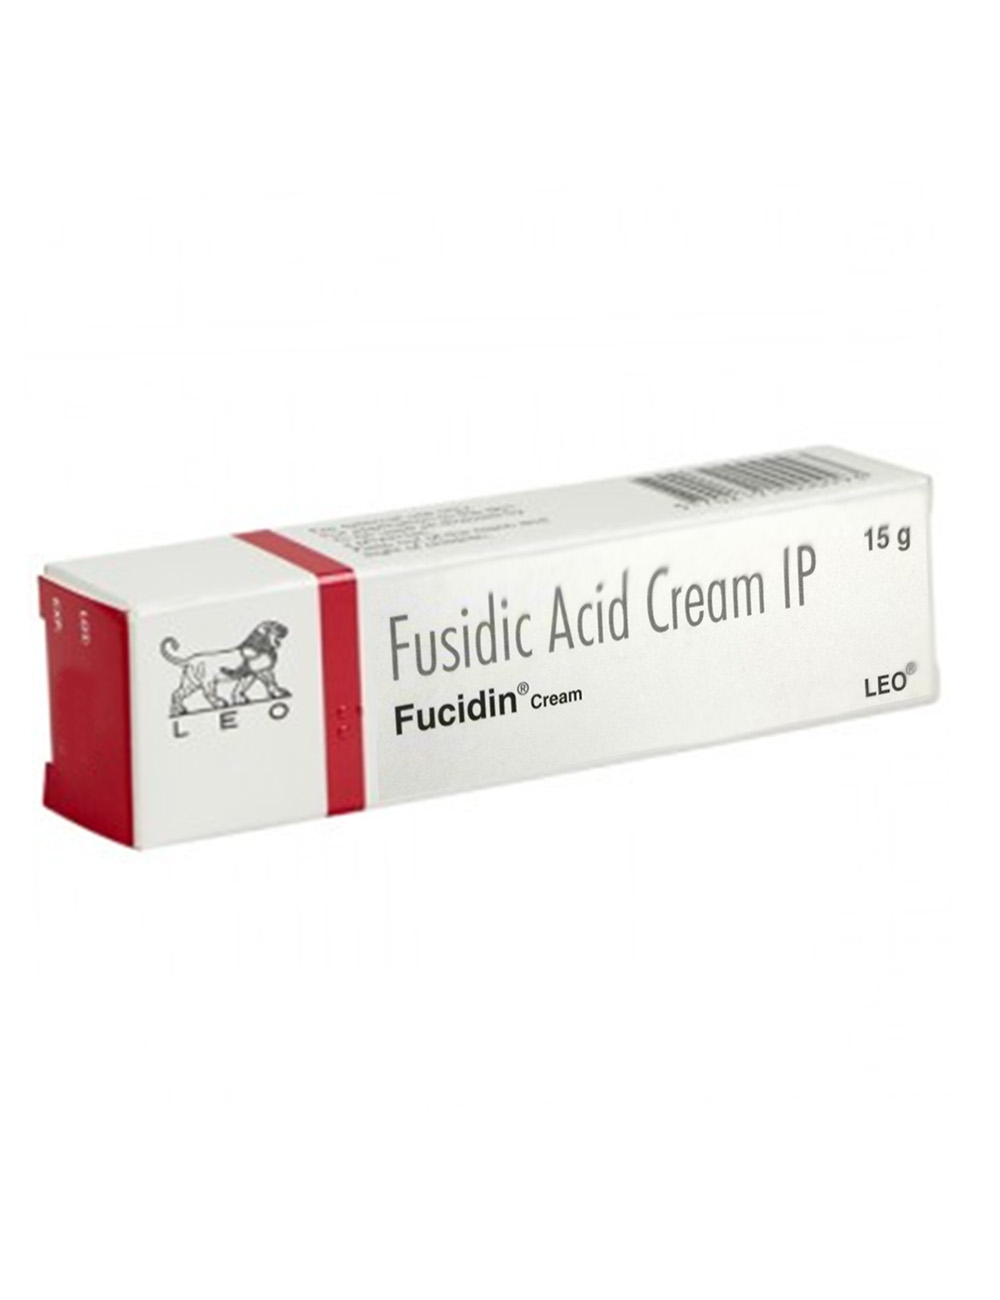 Fucidin Cream 15g Uses Benefits Side Effects Price